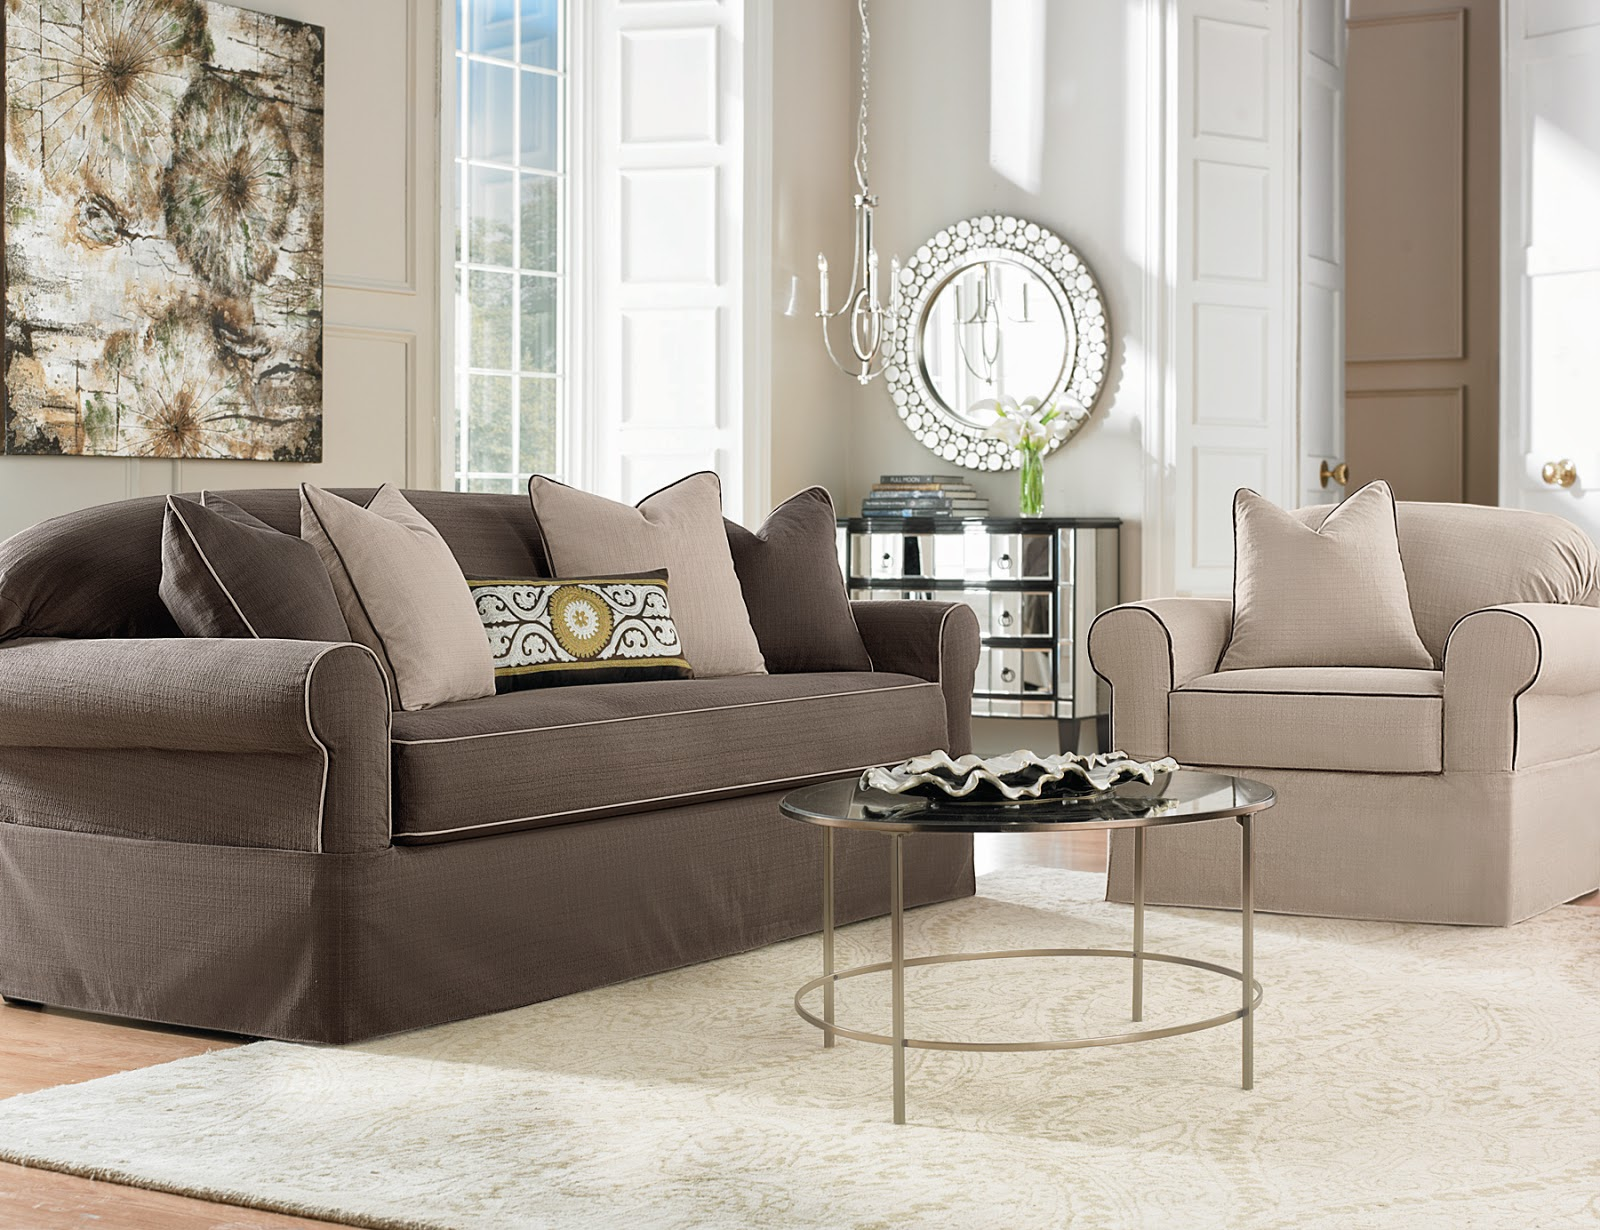 http://www.surefit.net/shop/categories/sofa-loveseat-and-chair-slipcovers-separate-seat/bahama-sofa.cfm?sku=41752&stc=0526100001